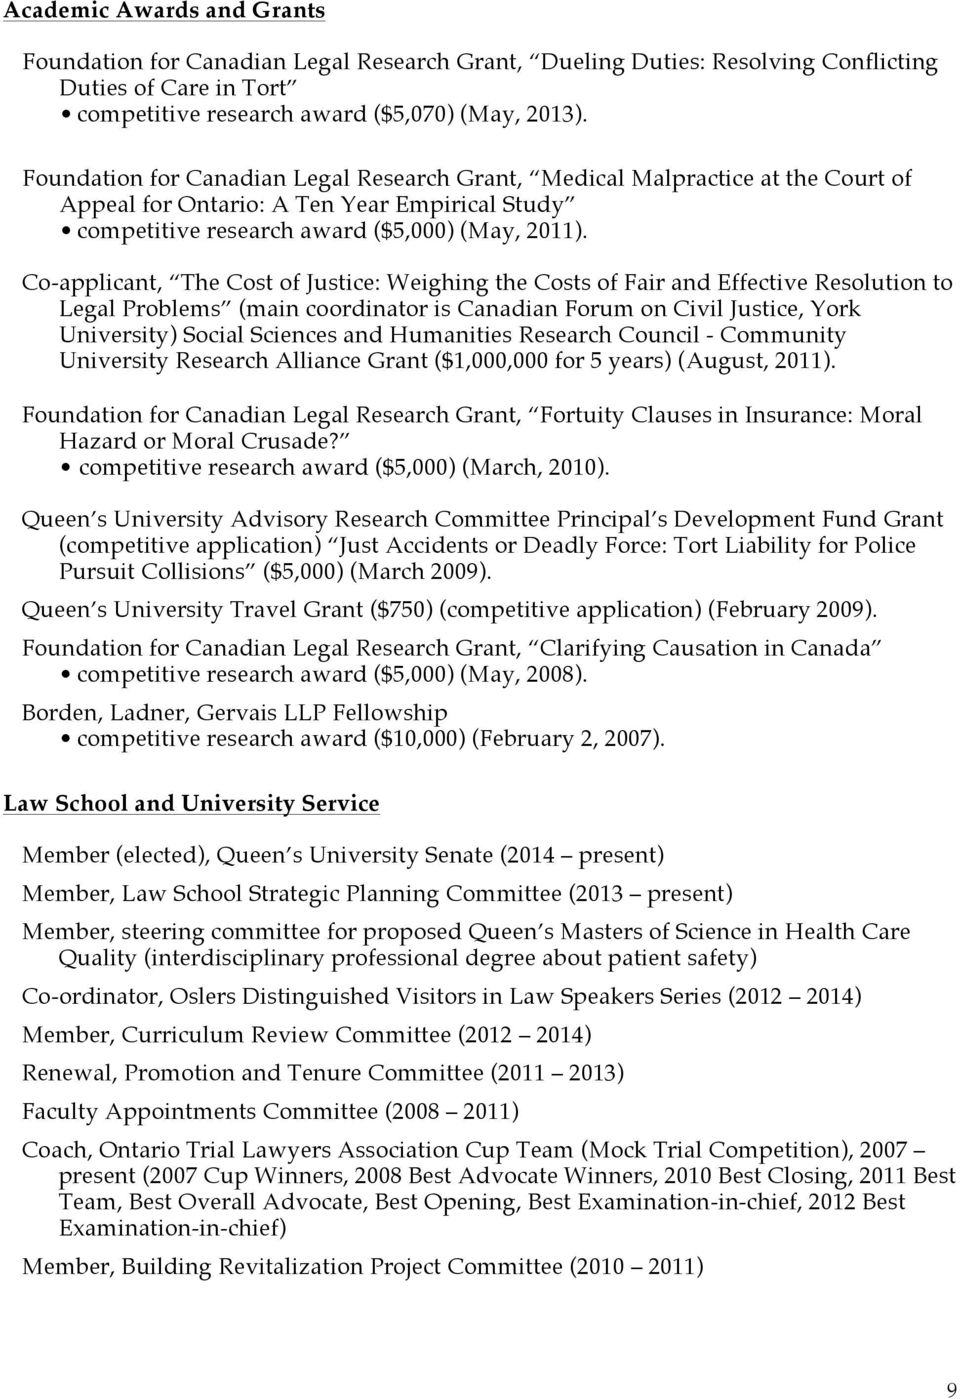 Co-applicant, The Cost of Justice: Weighing the Costs of Fair and Effective Resolution to Legal Problems (main coordinator is Canadian Forum on Civil Justice, York University) Social Sciences and